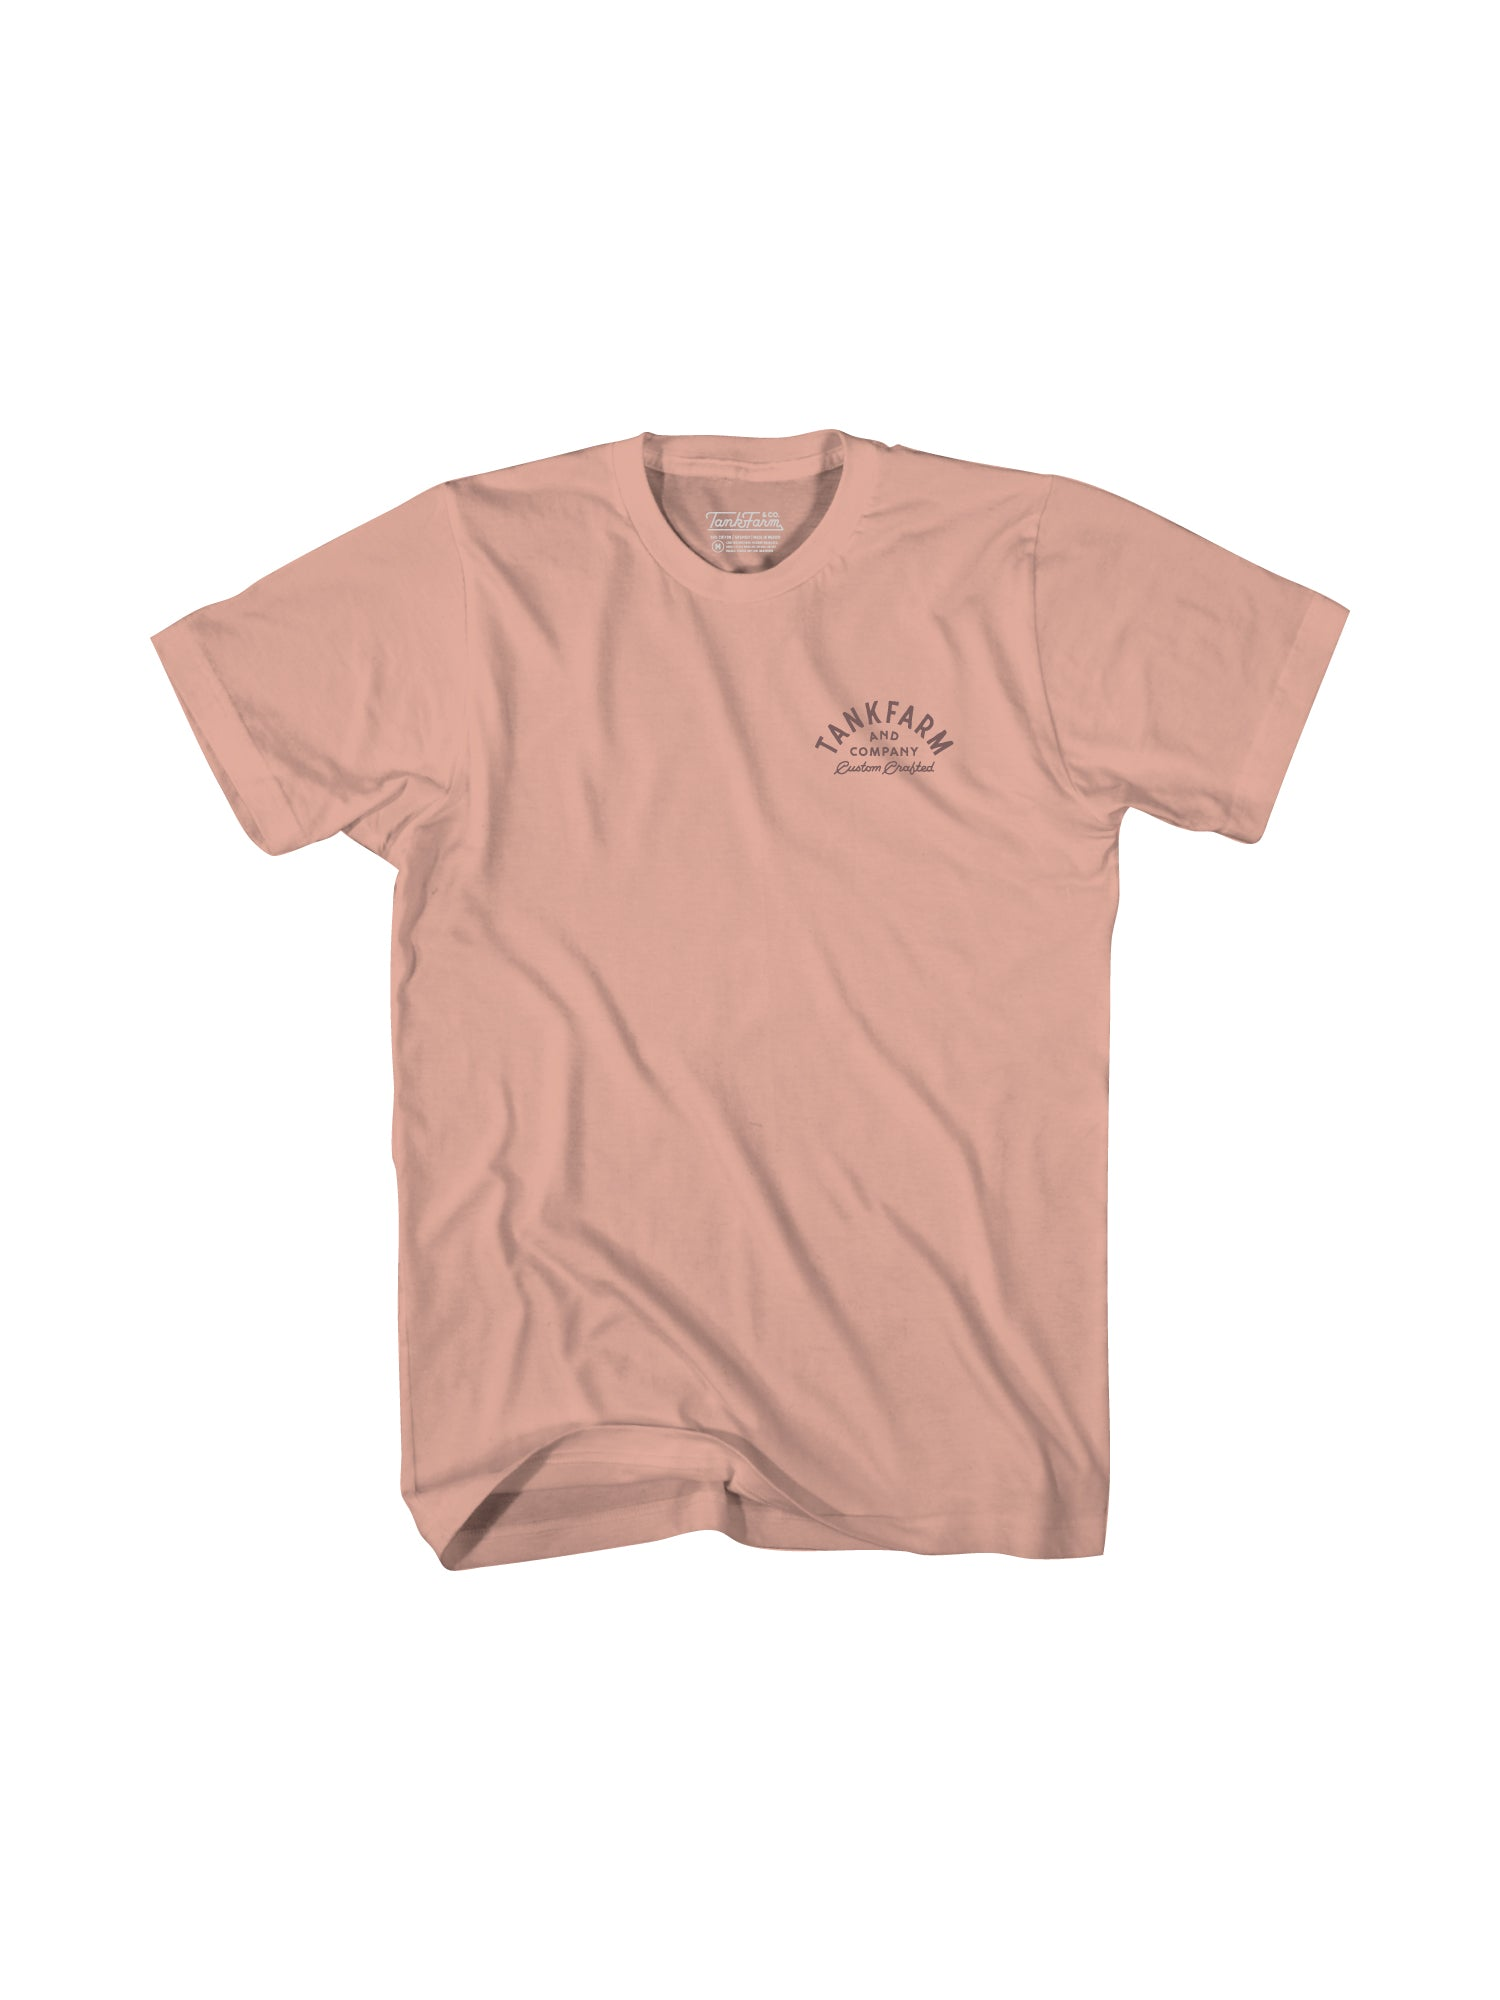 CRAFTED IN SB - DUSTY ROSE - Tankfarm & Co.